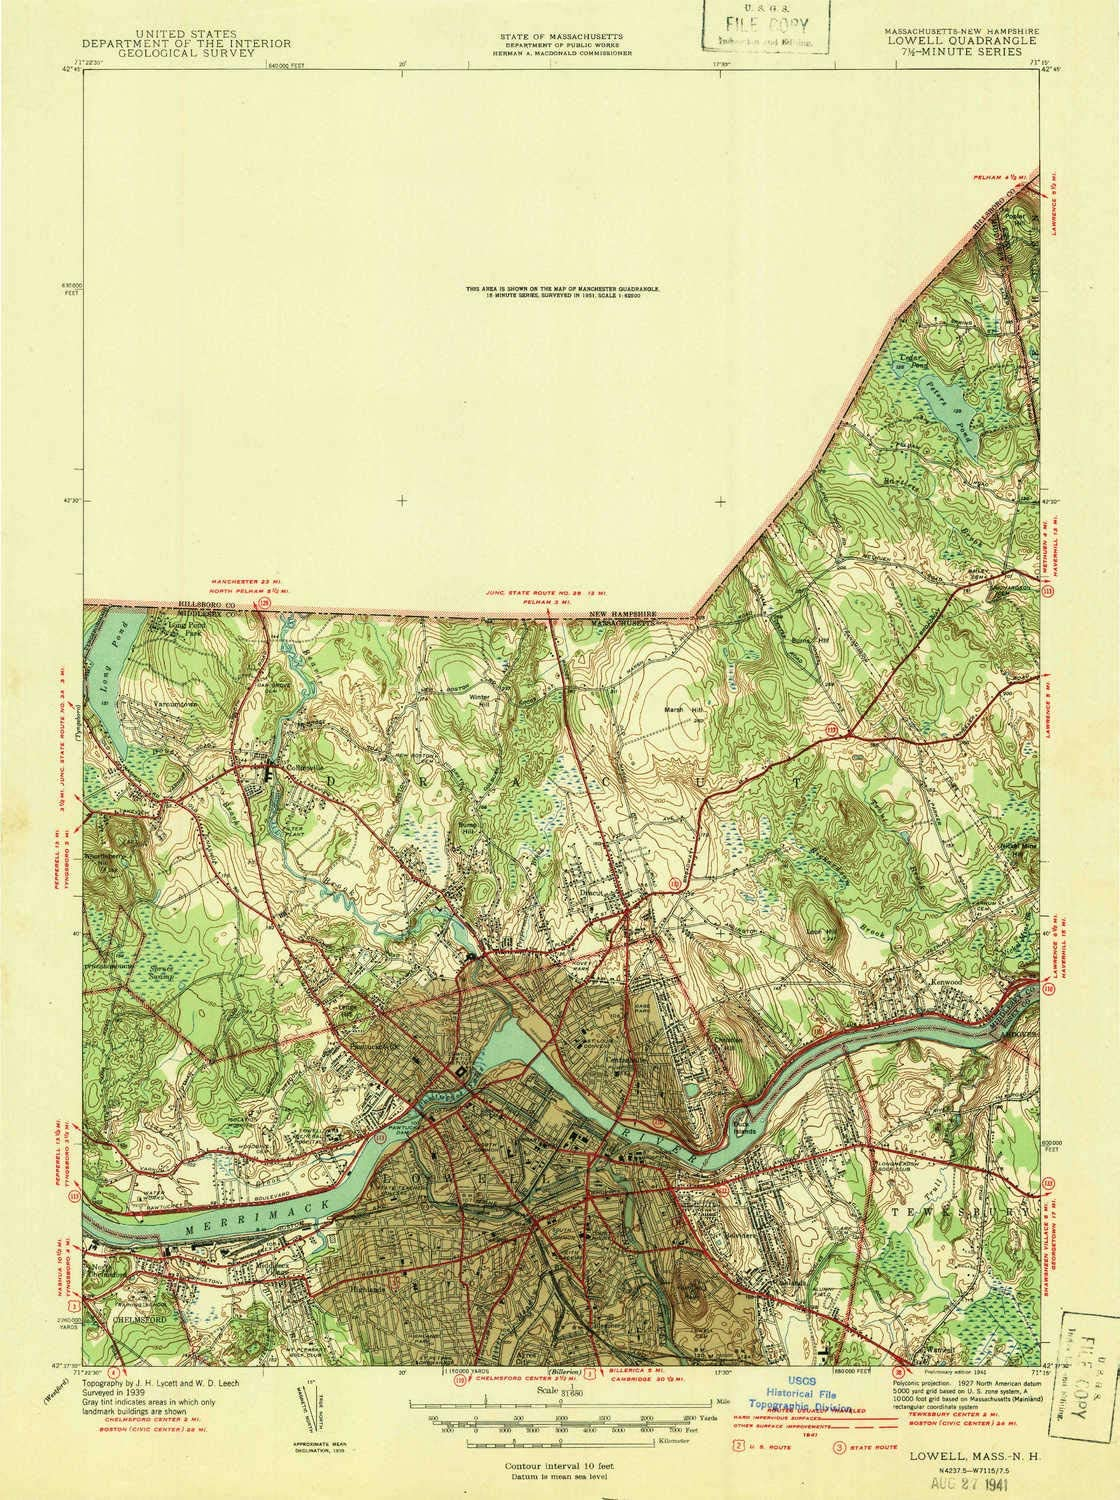 Lowell MA topo map 1:31680 X Challenge the lowest price of Japan ☆ Scale At the price Historical 7.5 Minute